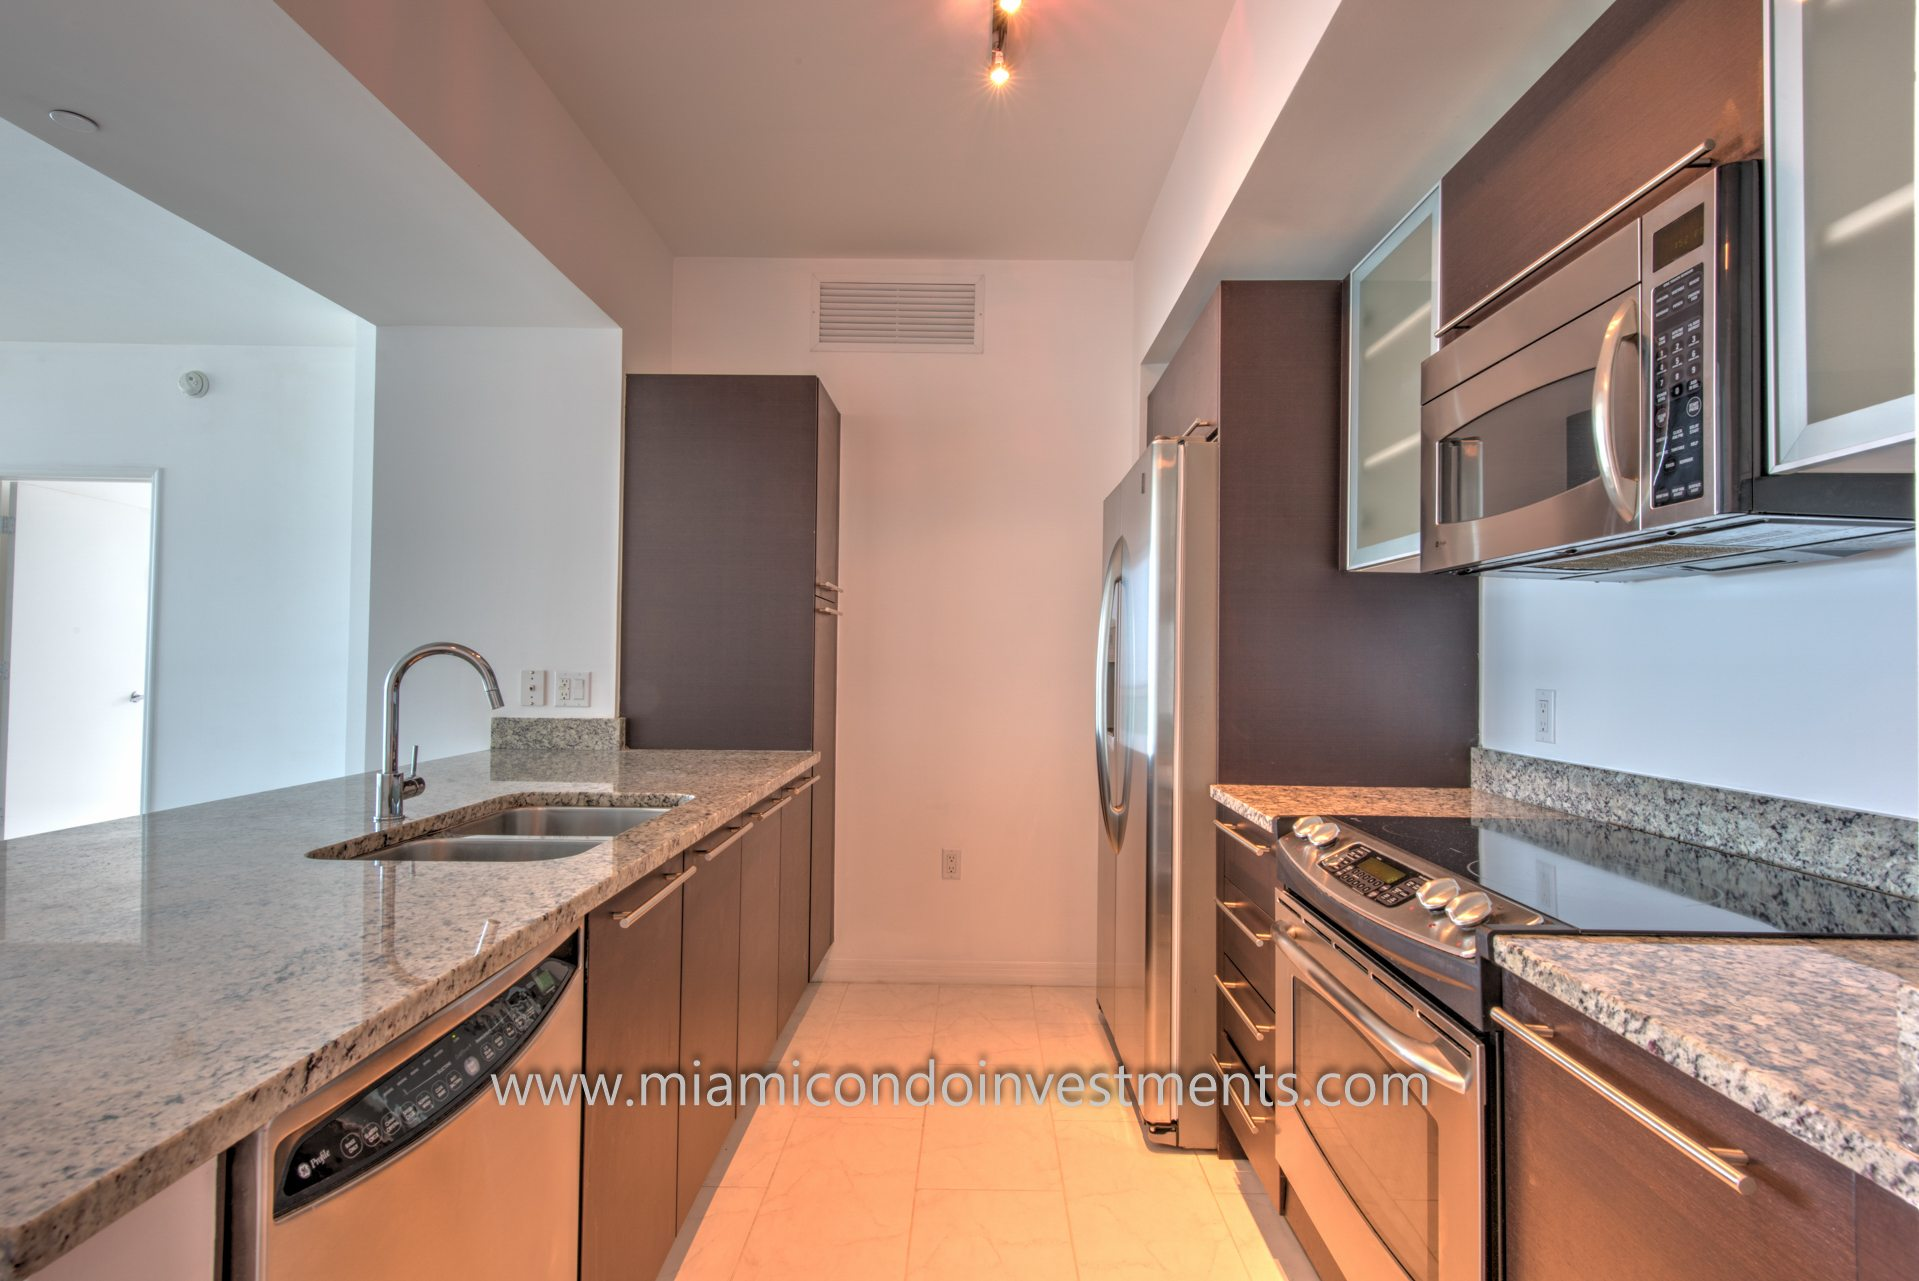 The Plaza on Brickell west tower kitchen 2